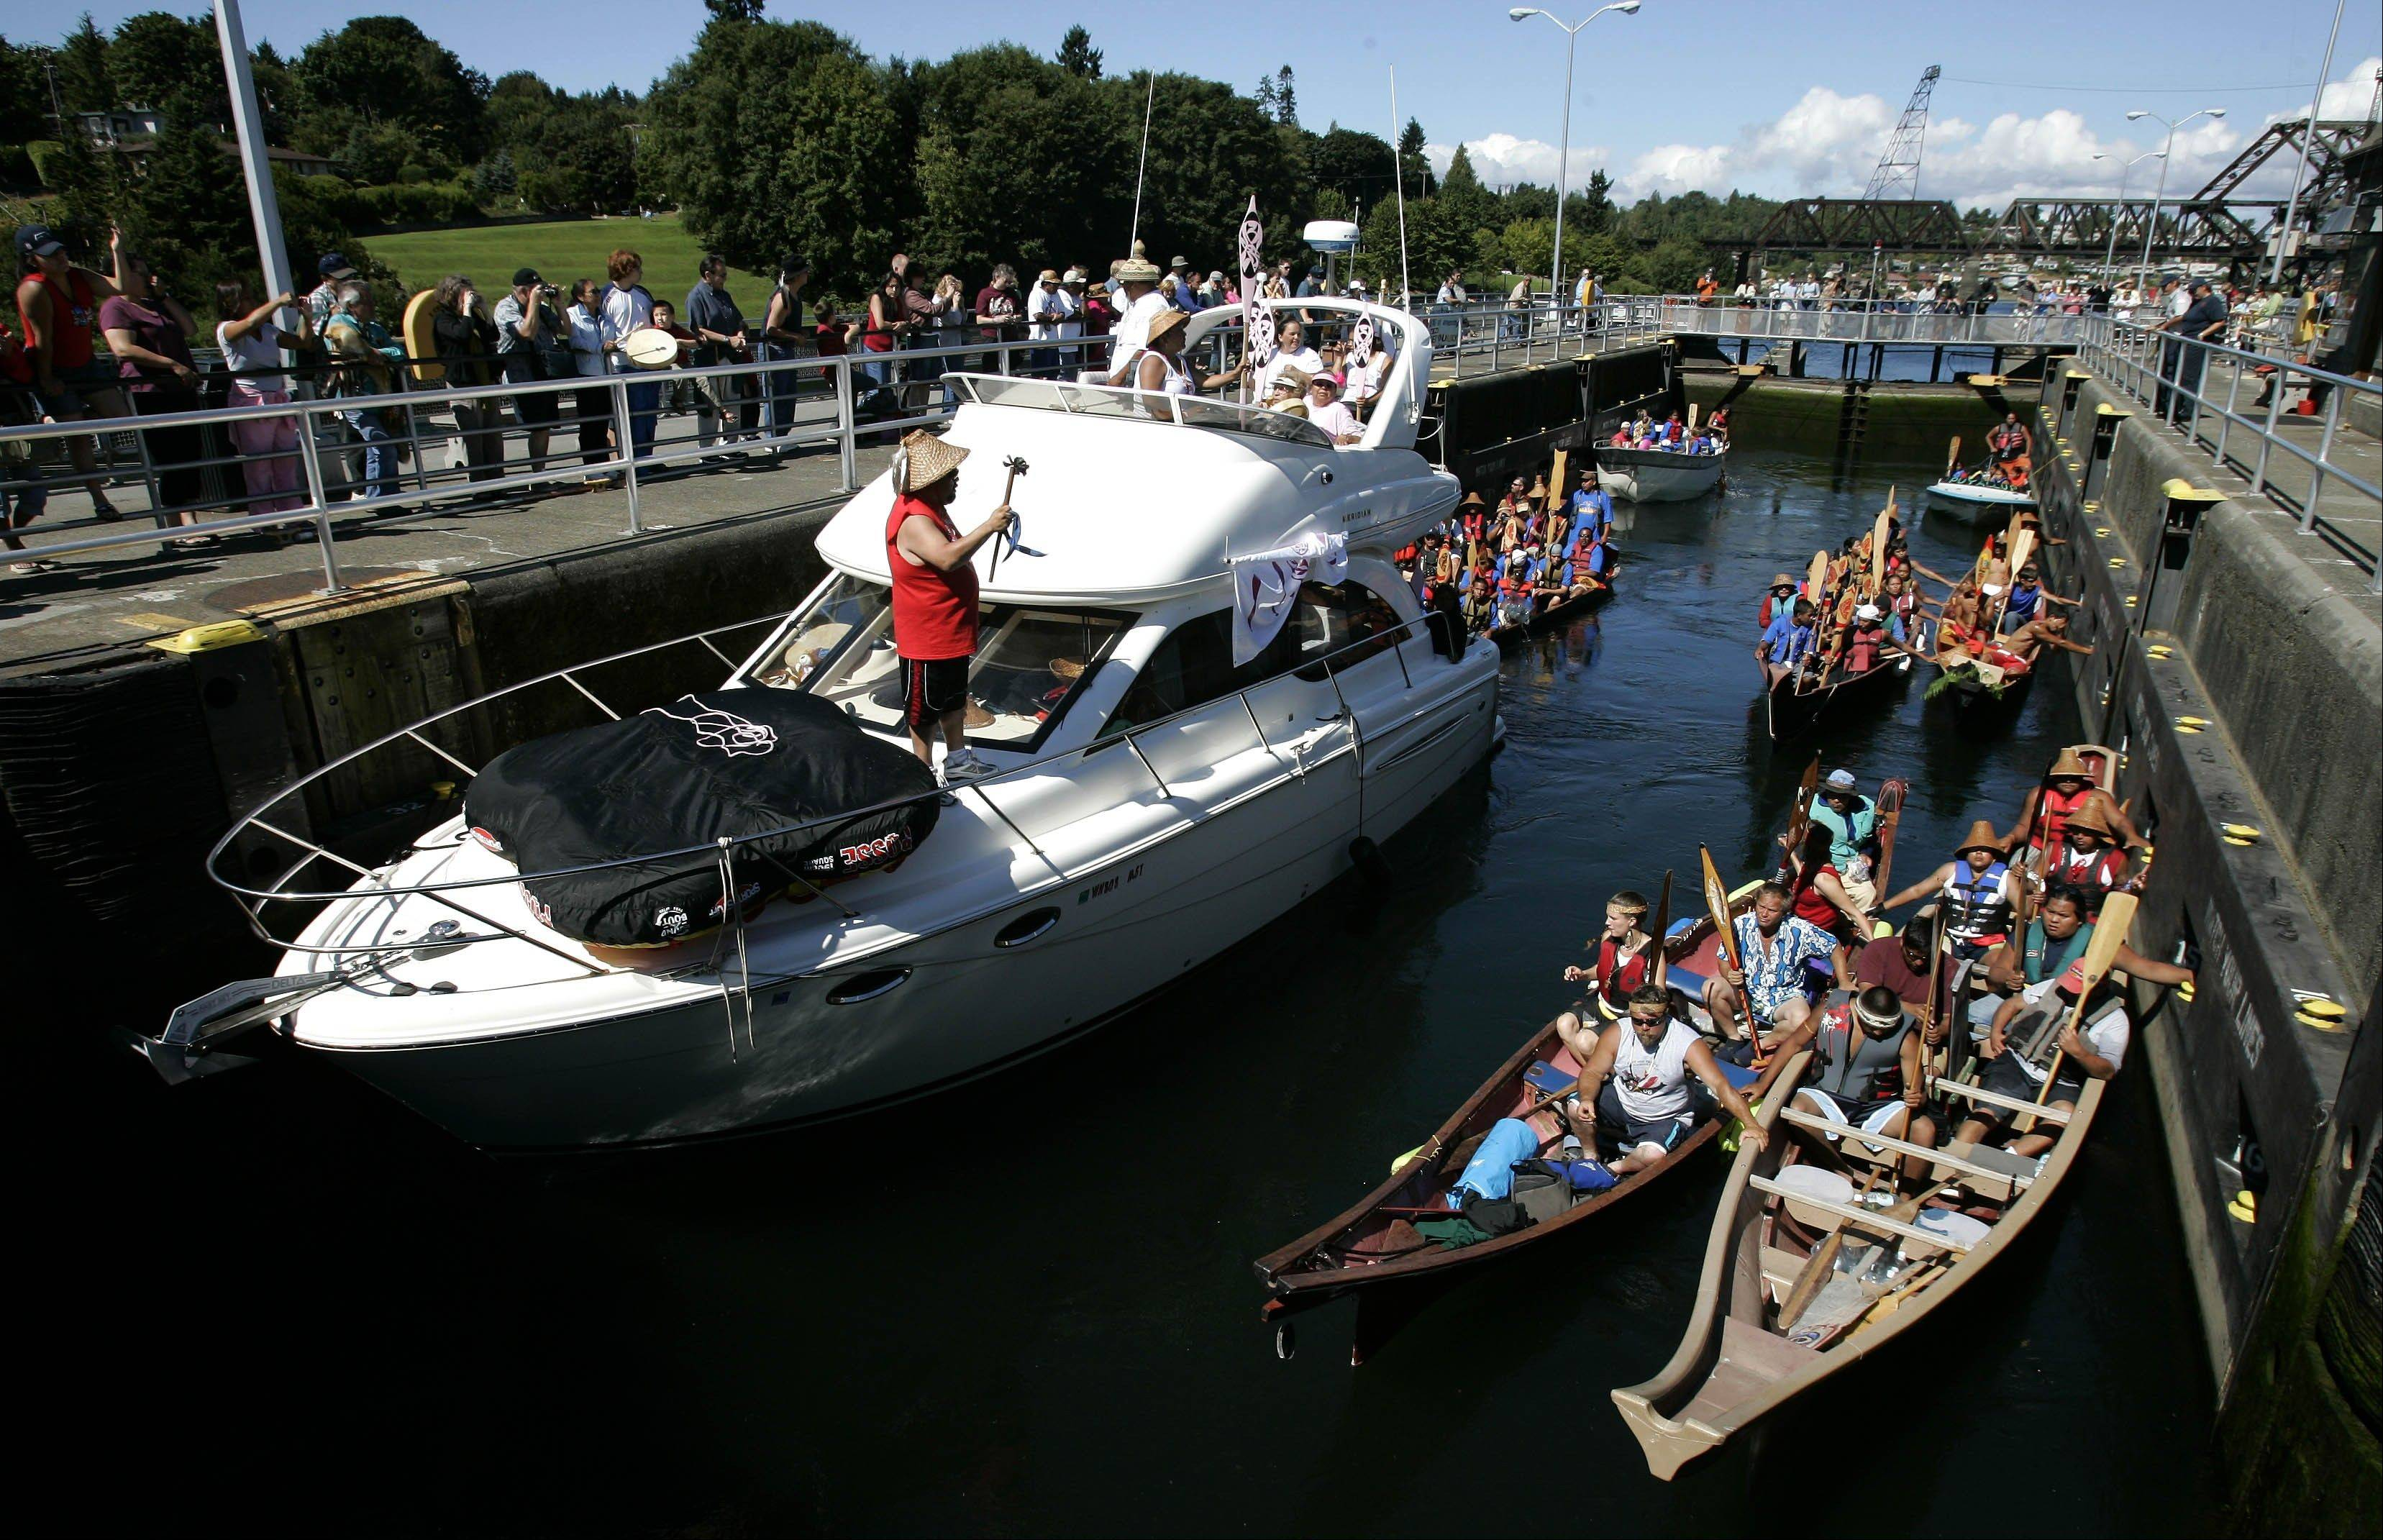 Boats and tribal canoes take part in the Tribal Journey in the Ballard Locks in Seattle. The Tribal Journey is held every year as a way to preserve Indian heritage and promote positive lifestyles for Indian youth.